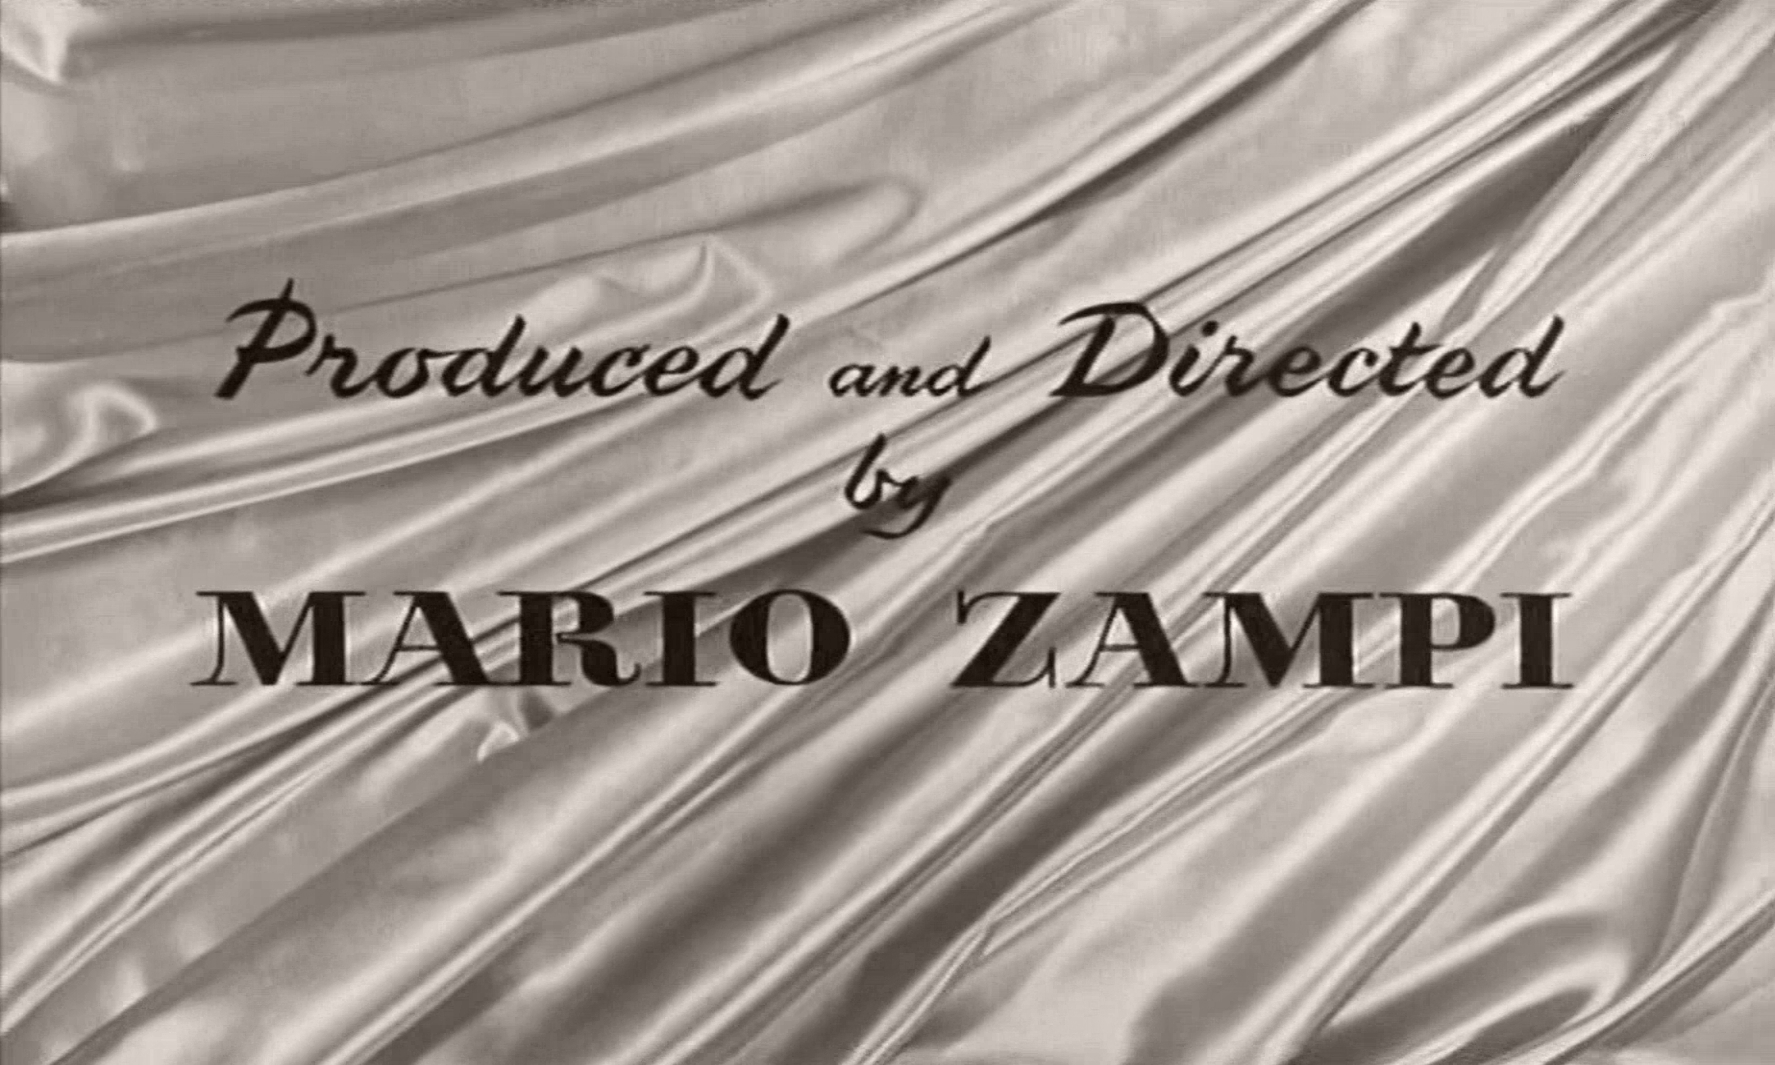 Main title from The Naked Truth (1957) (12).  Produced and directed by Mario Zampi